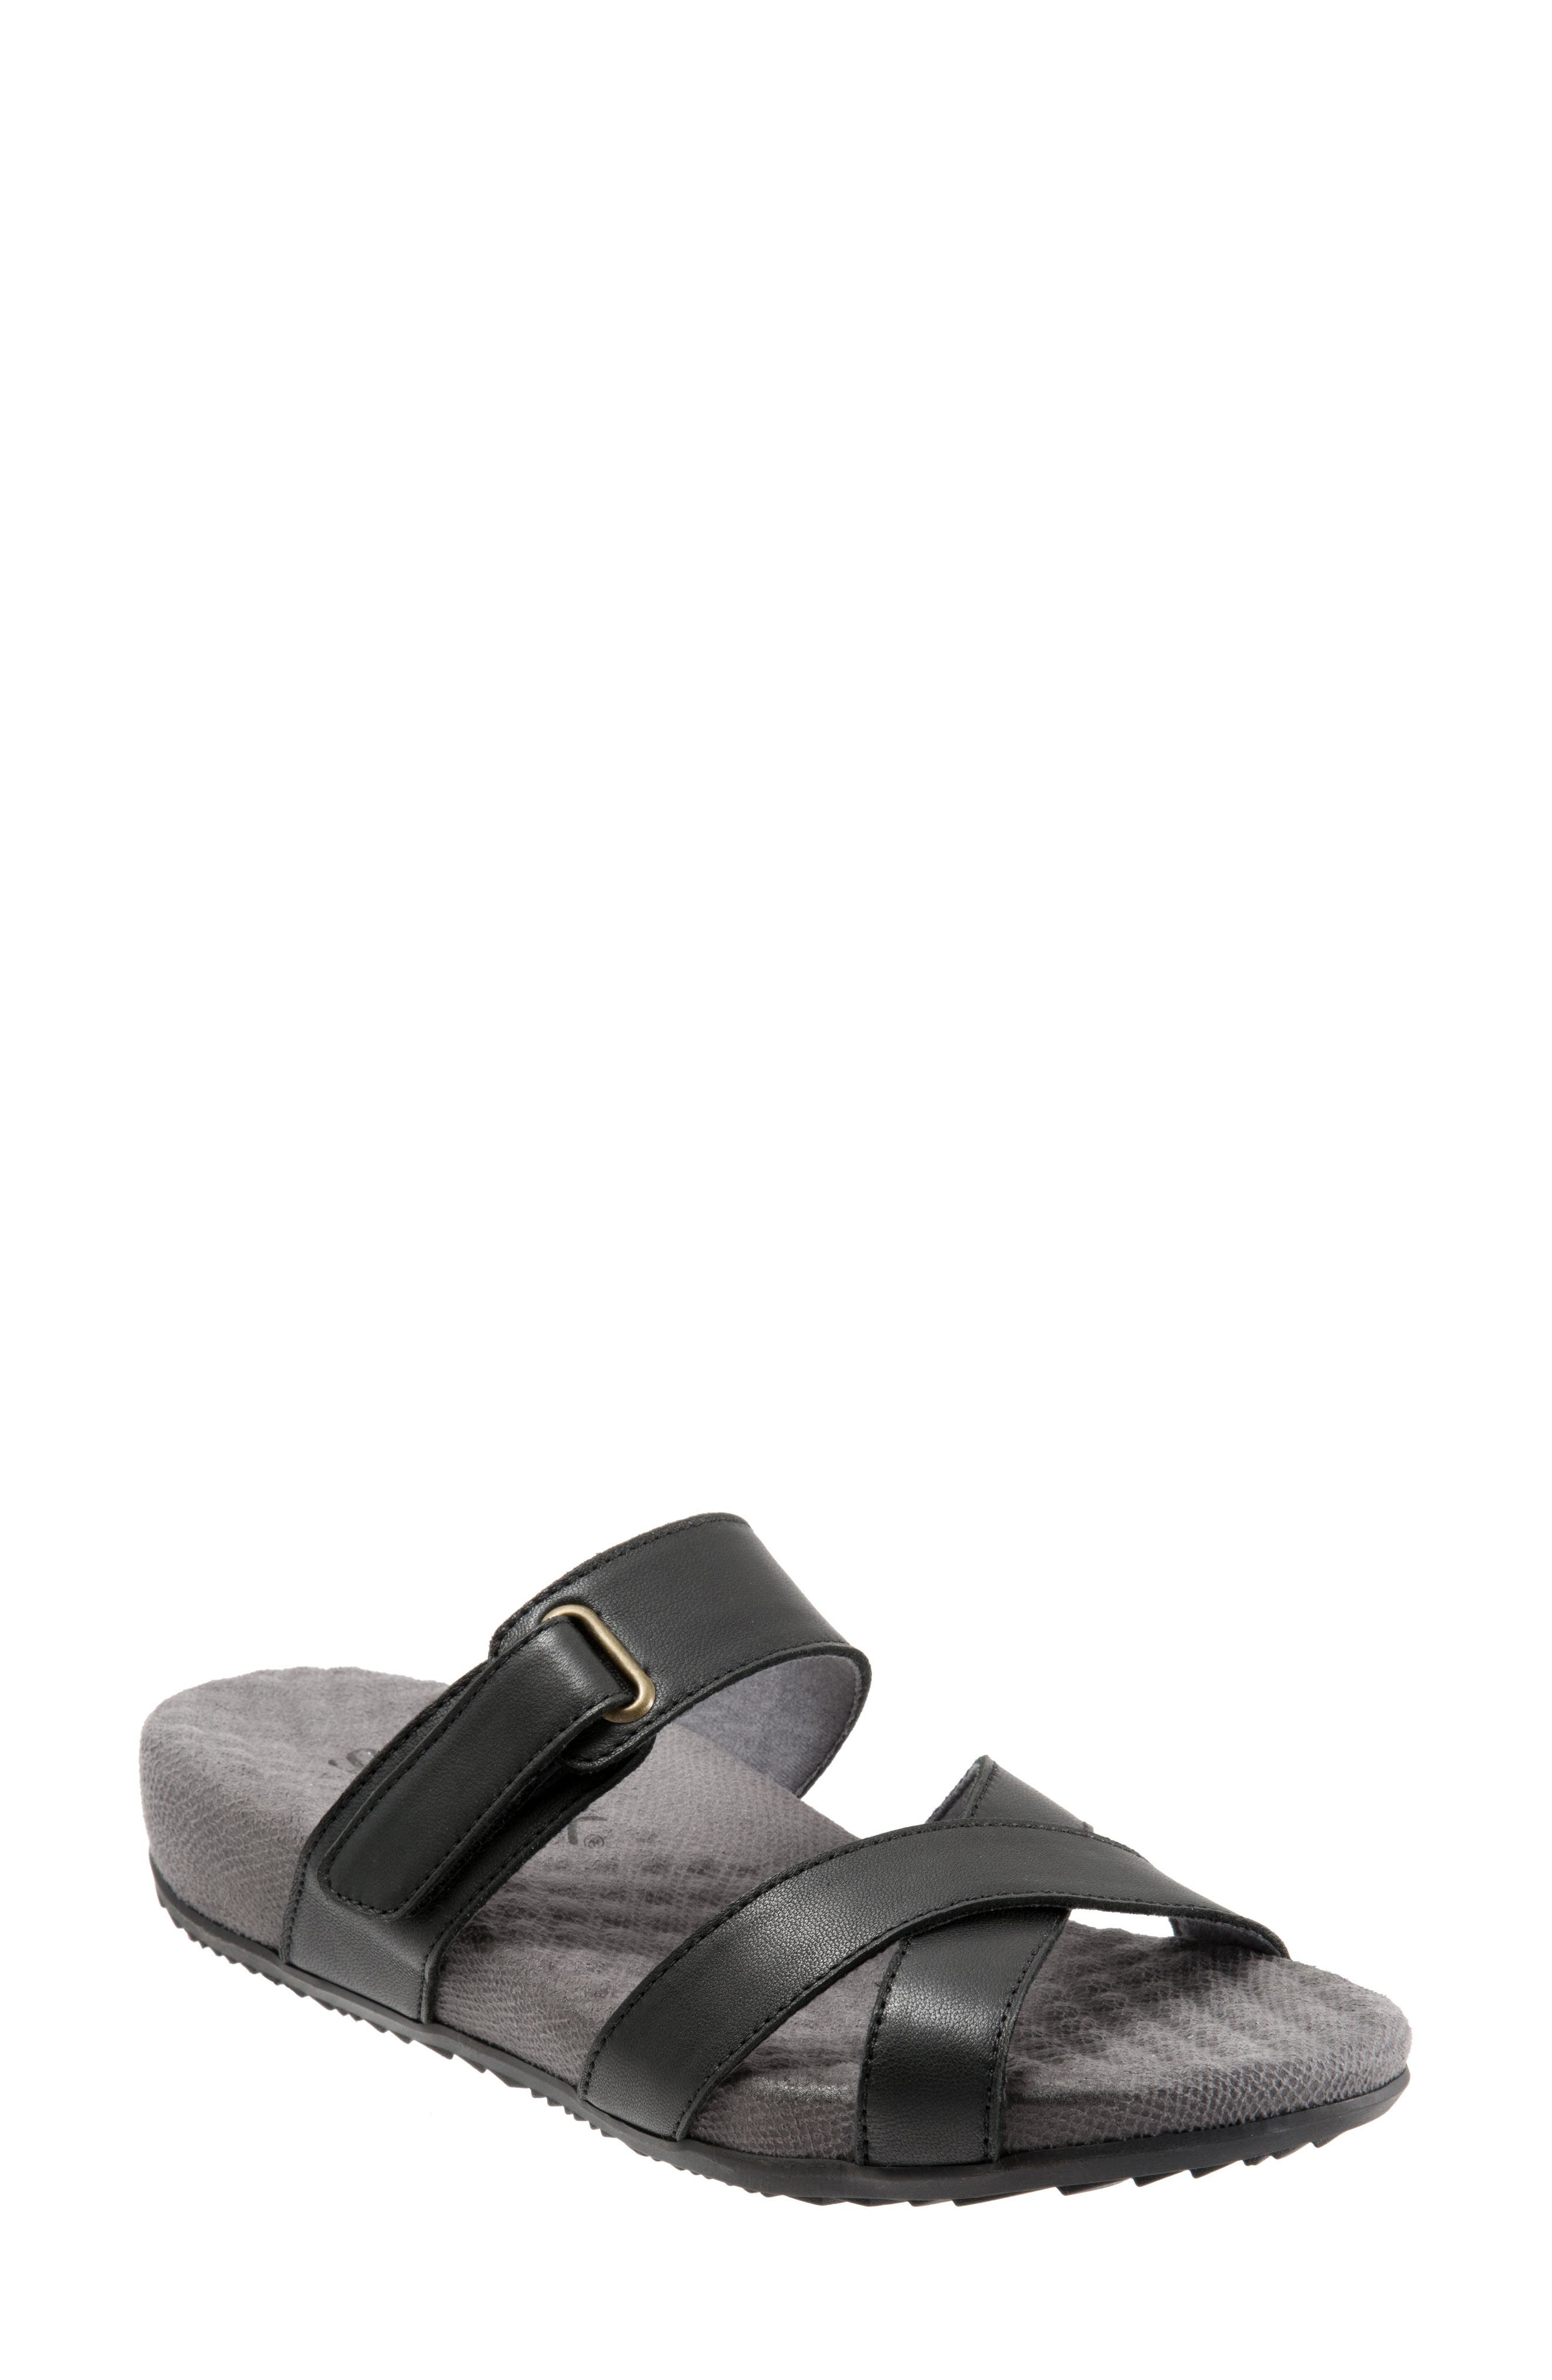 SOFTWALK<SUP>®</SUP> Brimley Sandal, Main, color, BLACK LEATHER